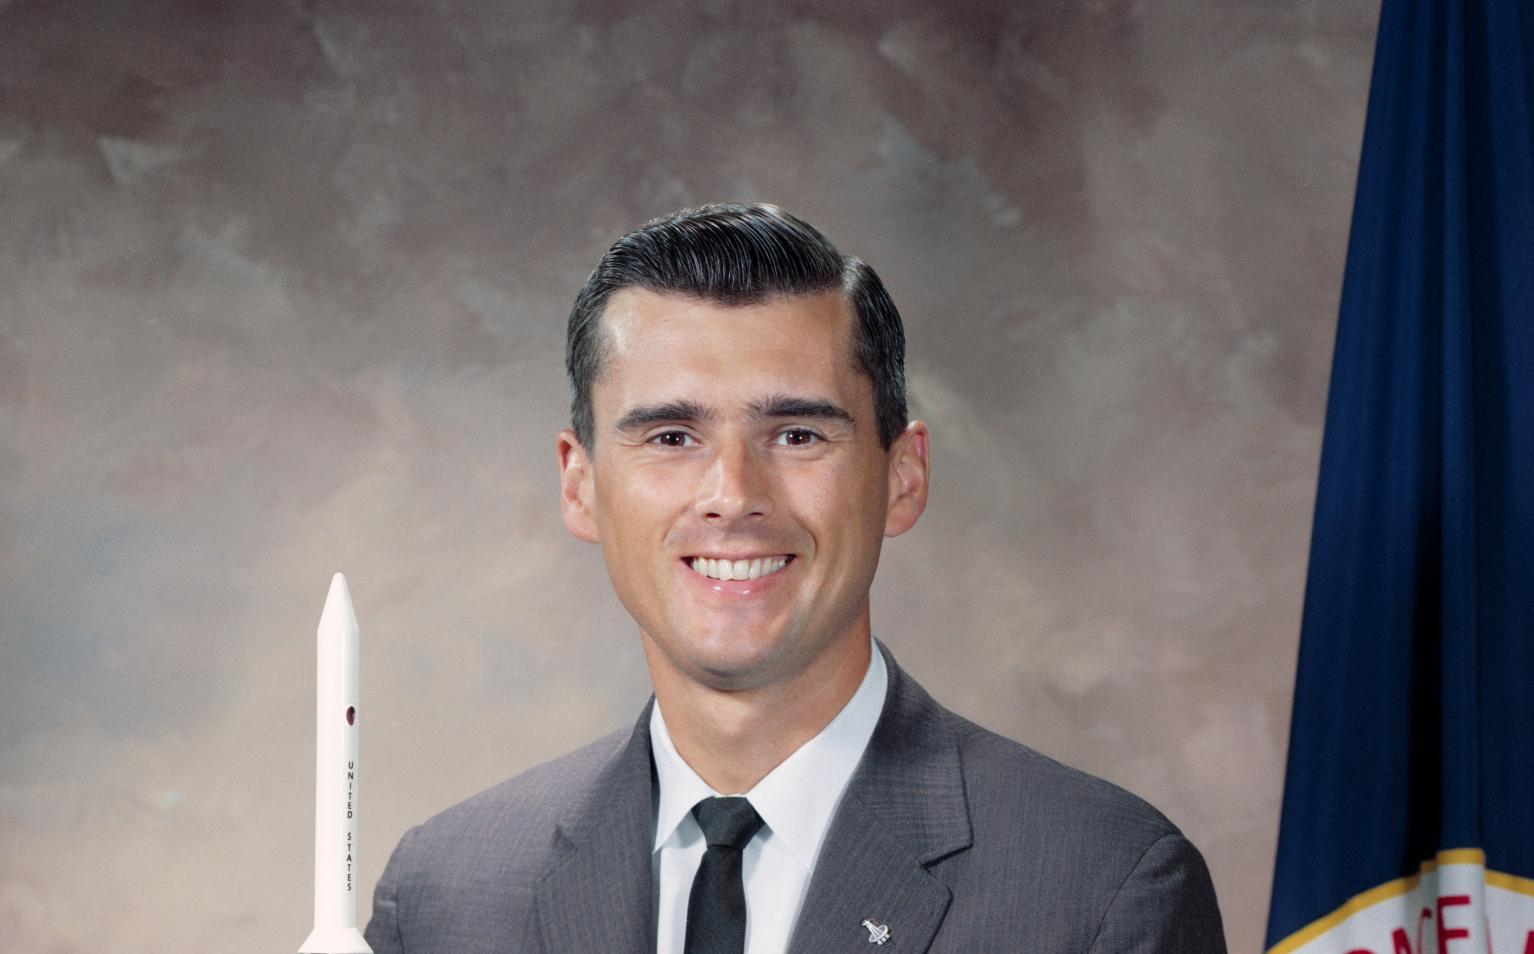 Apollo 1 Astronaut Roger Chaffee